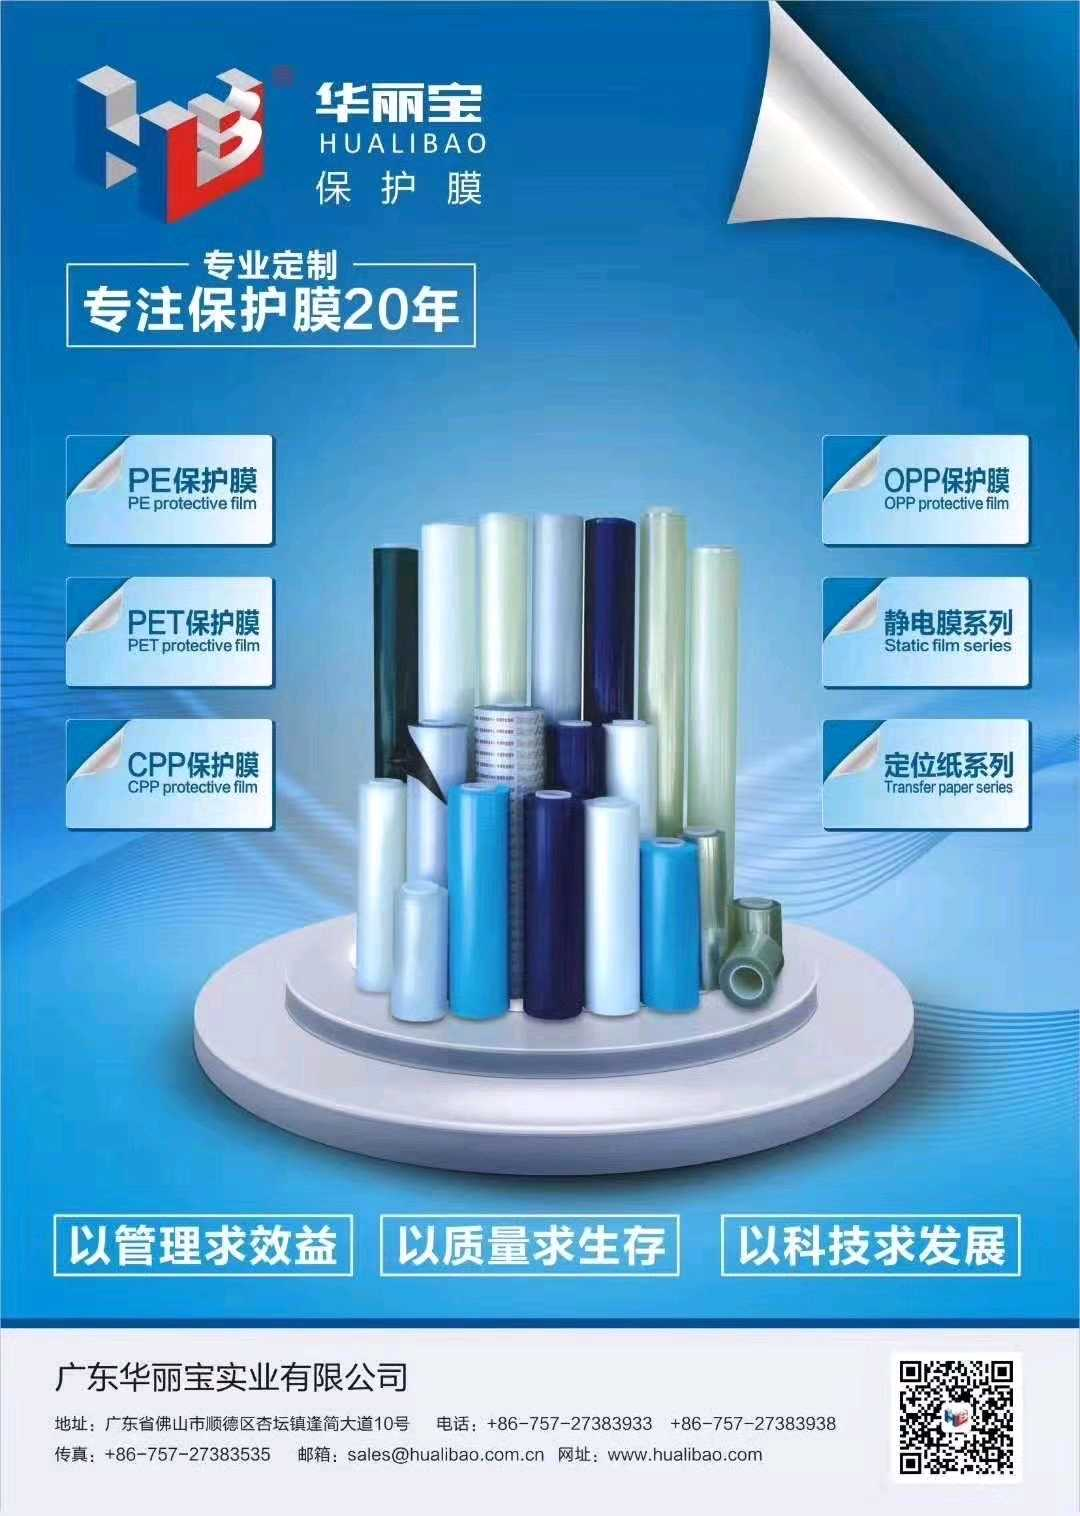 We are specialized in the production of surface protective film for 20 years